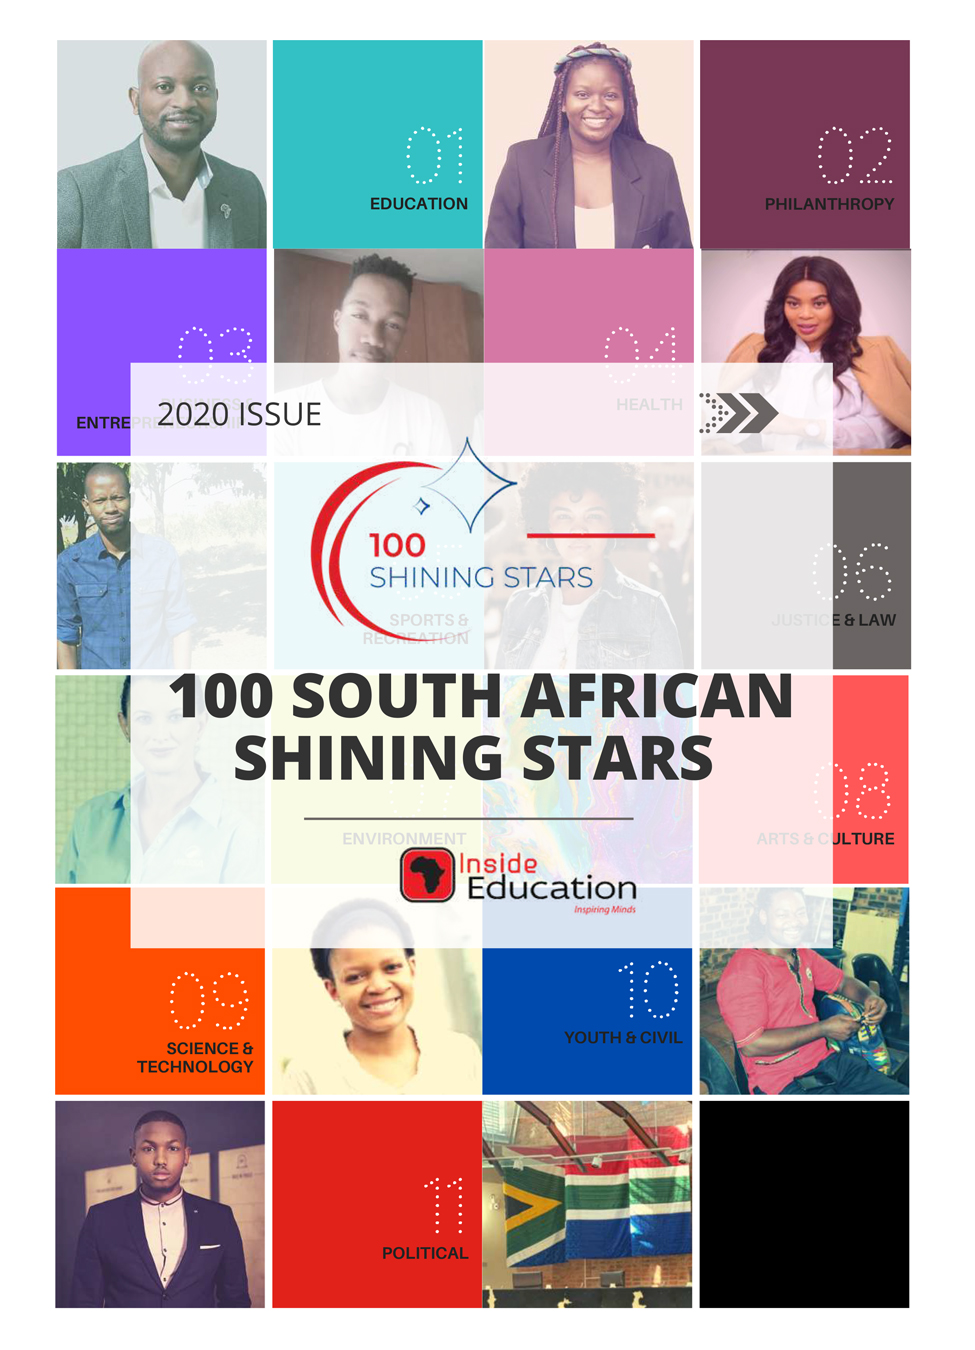 100 South African Shining Stars for 2020 Revealed